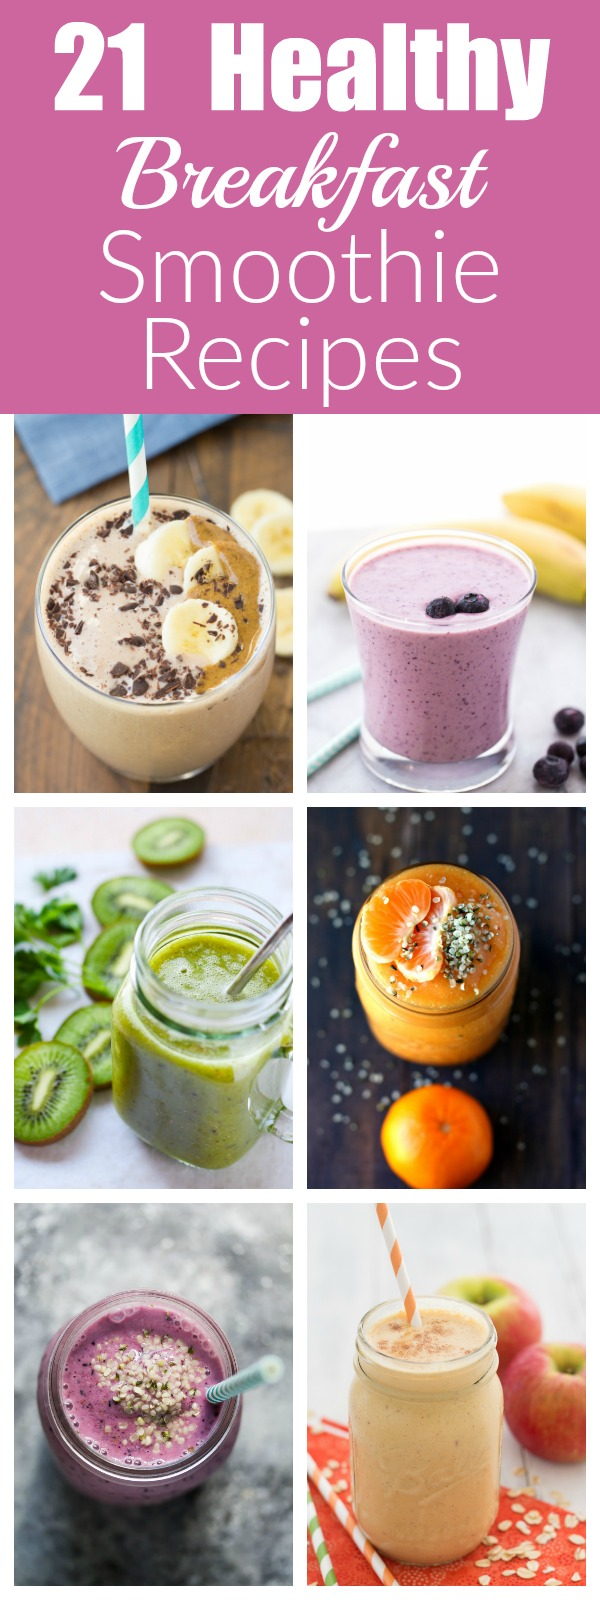 21 HEALTHY Breakfast Smoothie recipes for busy mornings!   www.kristineskitchenblog.com